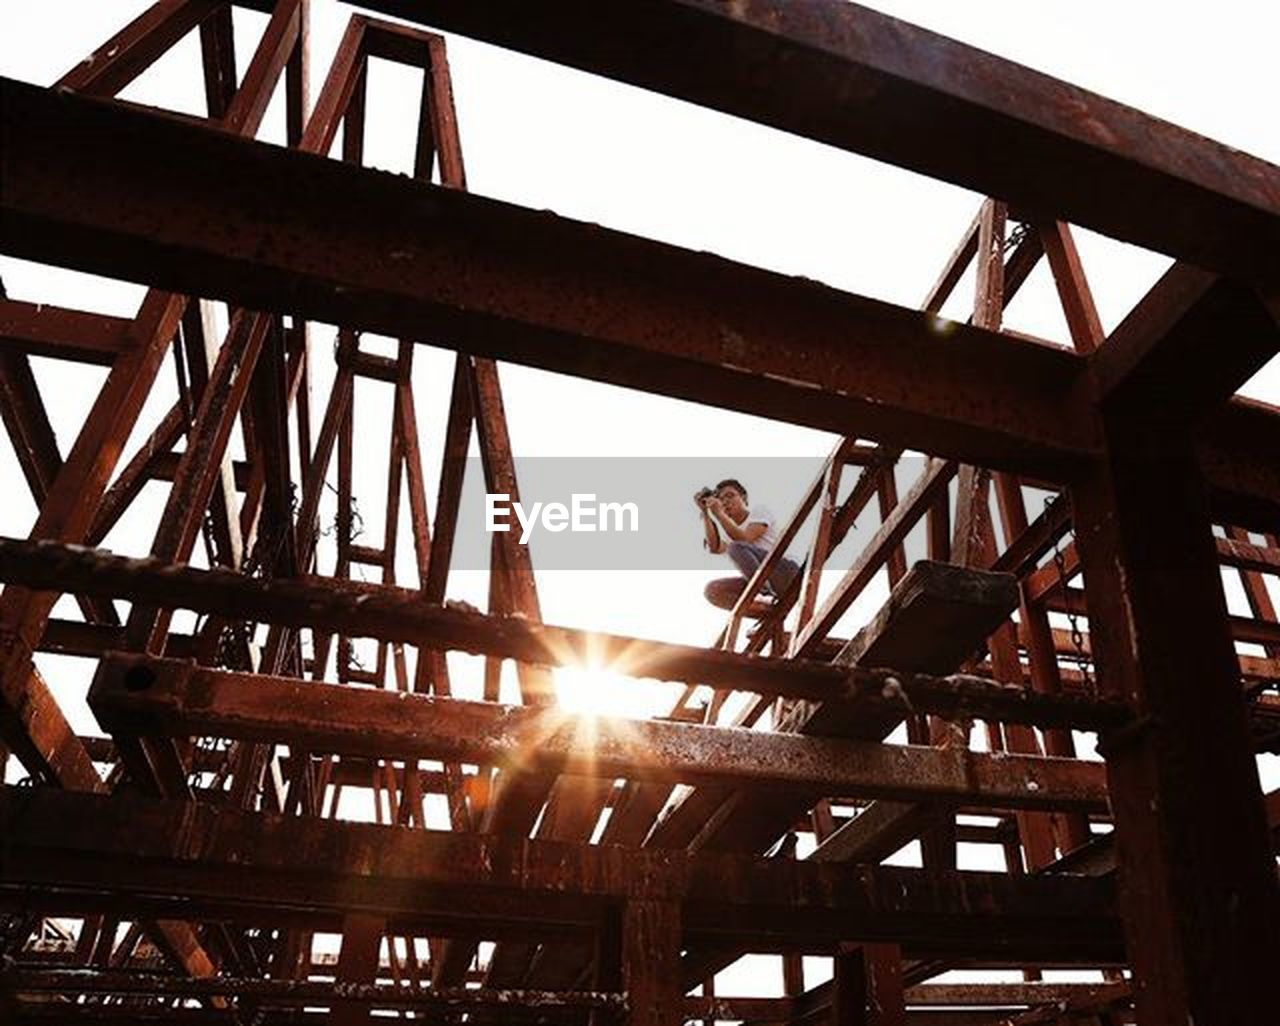 sun, sunlight, sunbeam, lens flare, low angle view, girder, bridge - man made structure, steel, built structure, no people, day, architecture, outdoors, sky, metal industry